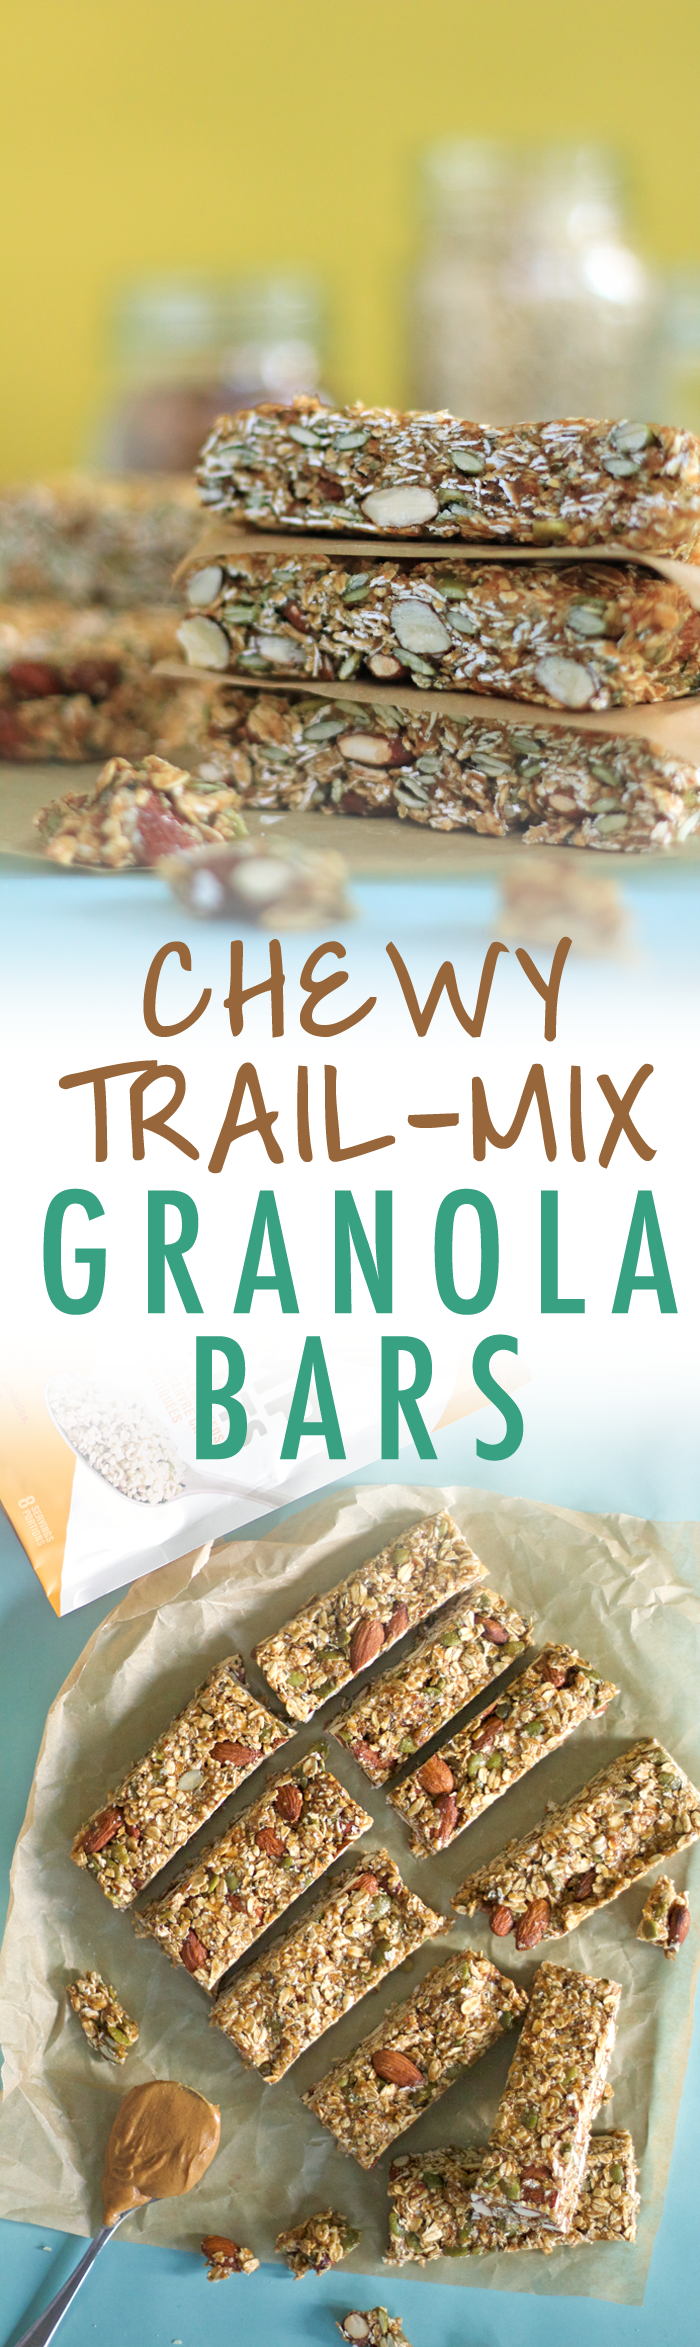 Hearty chewy granola bars loaded with toasted oats and almonds and a date and peanut butter caramel to hold it all together. | HEALTHNUT NUTRITION |